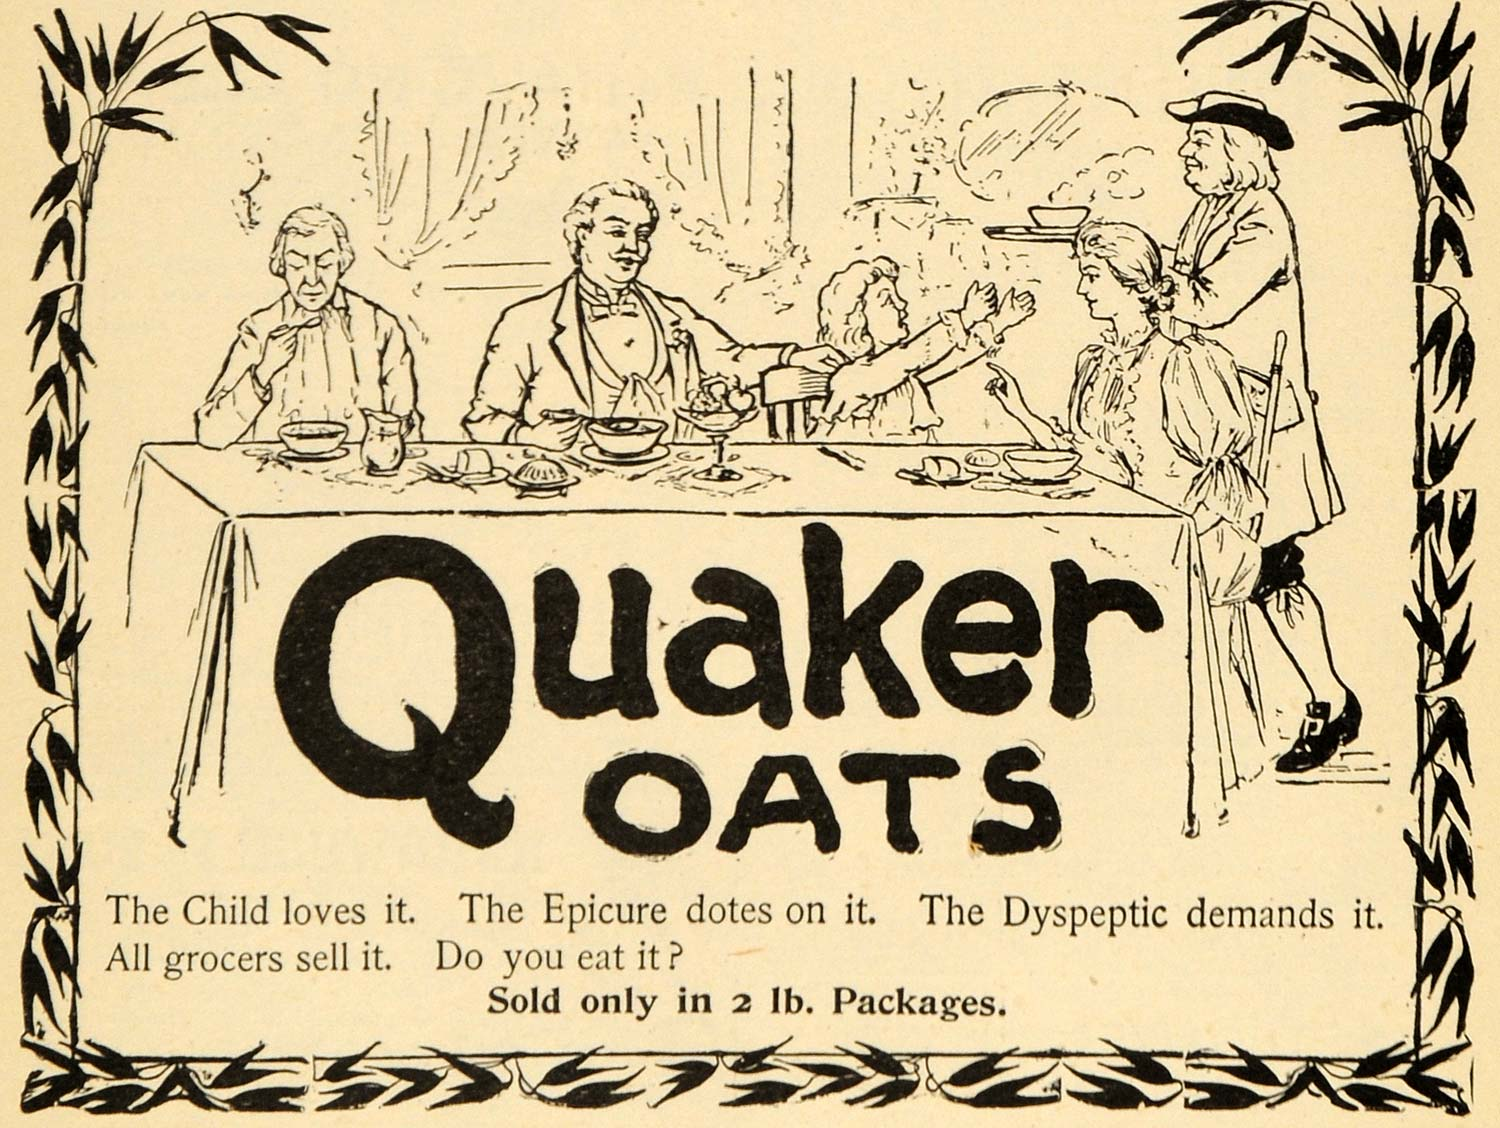 1895 Ad Quaker Oats Cereal Family Meal Time Dine Table - ORIGINAL TFO1